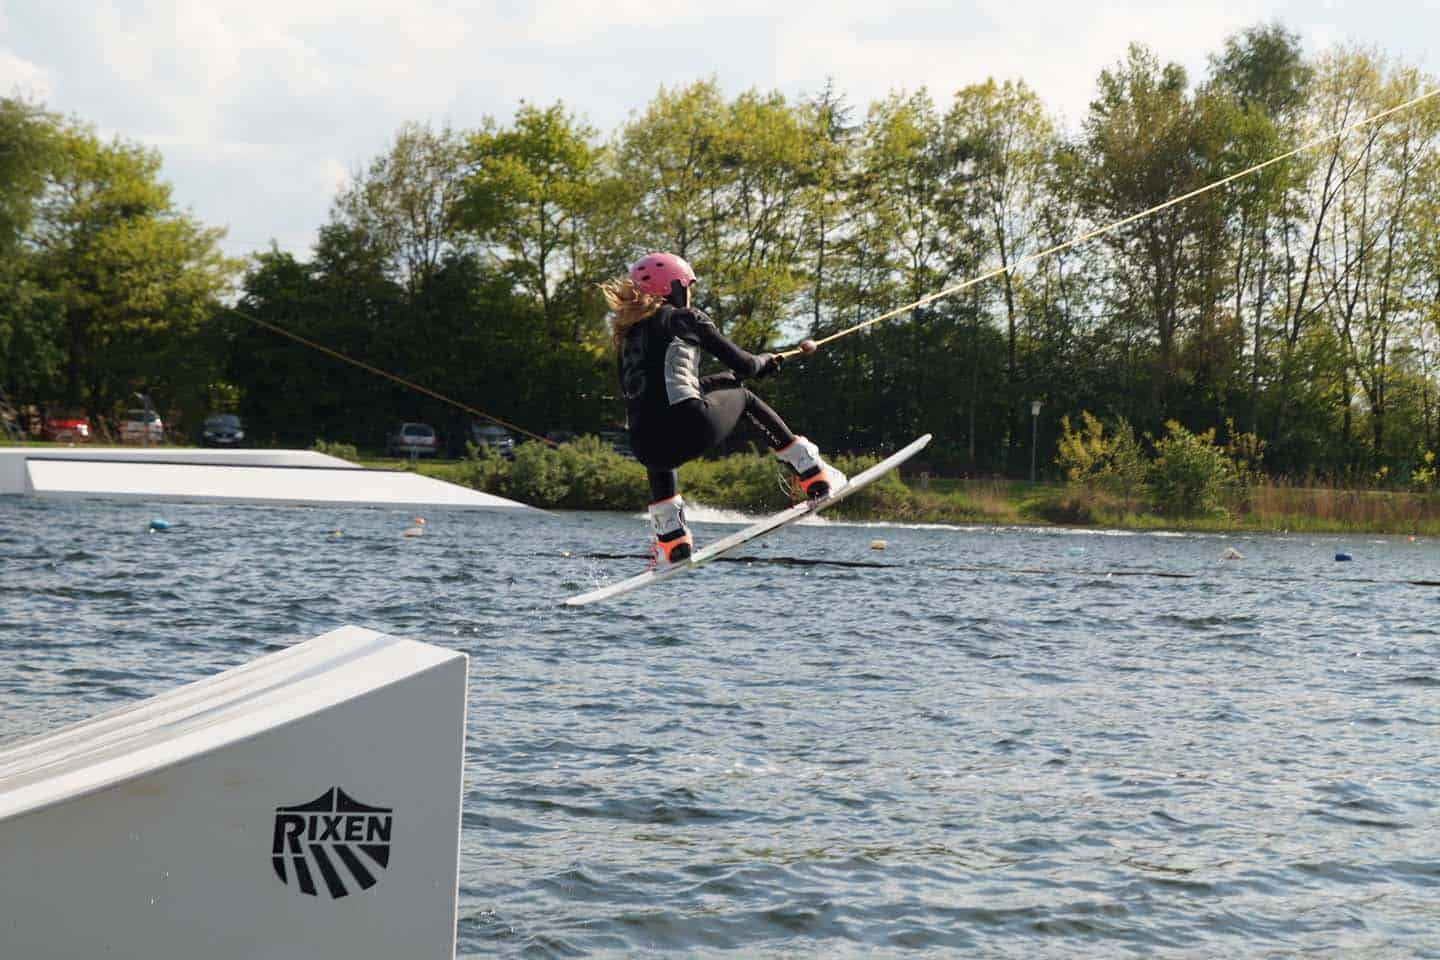 Alfsee waterski